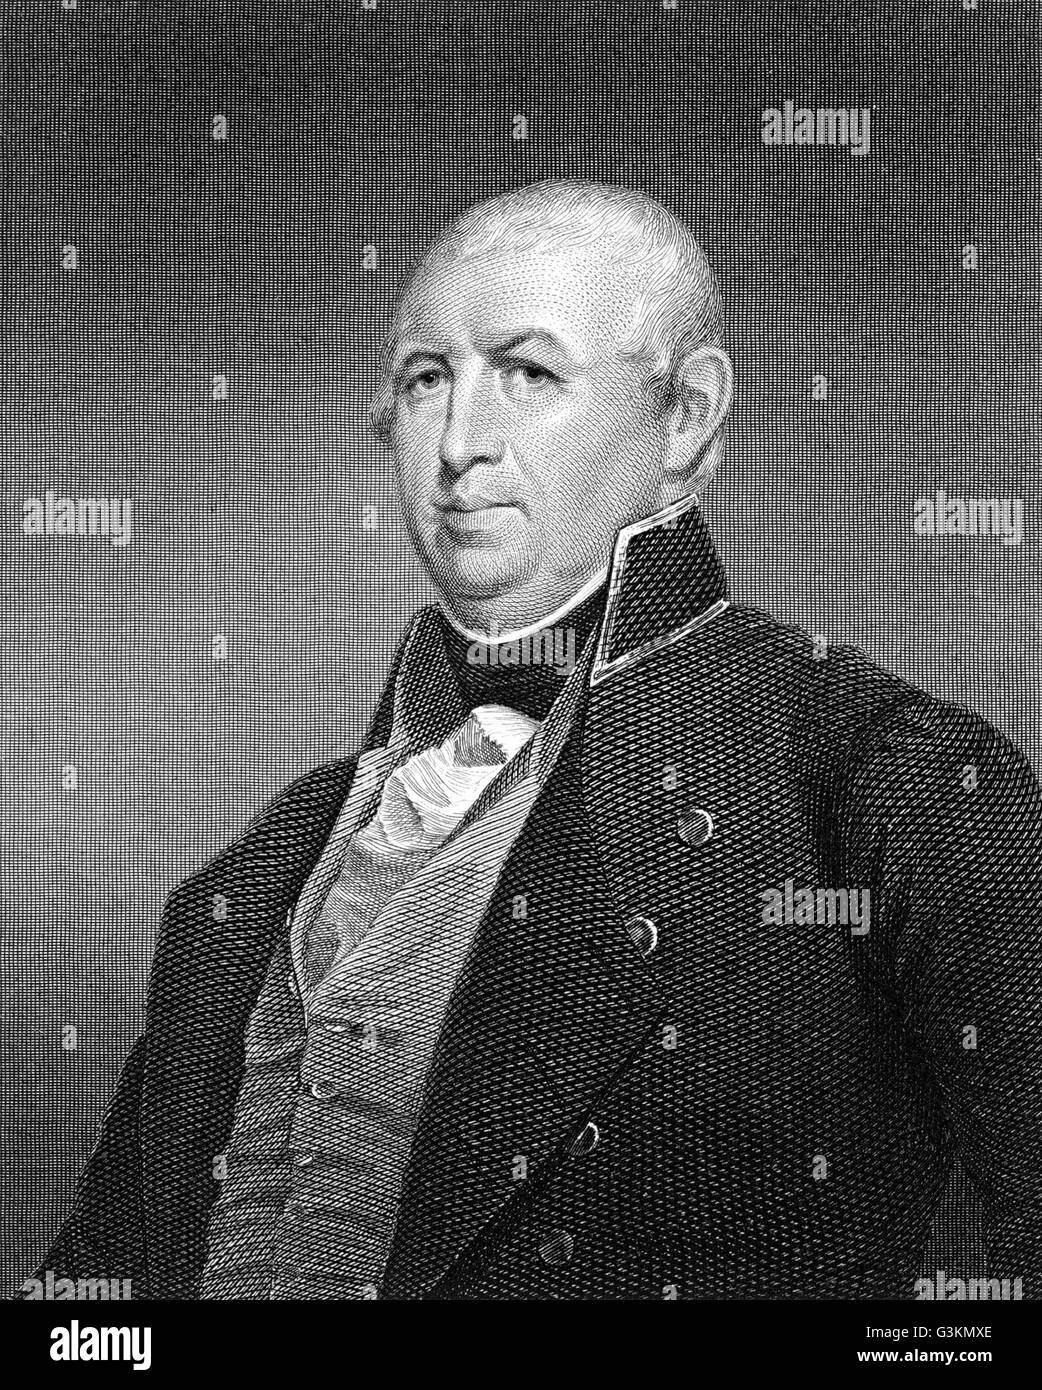 Isaac Shelby, 1750 - 1826 - Stock Image